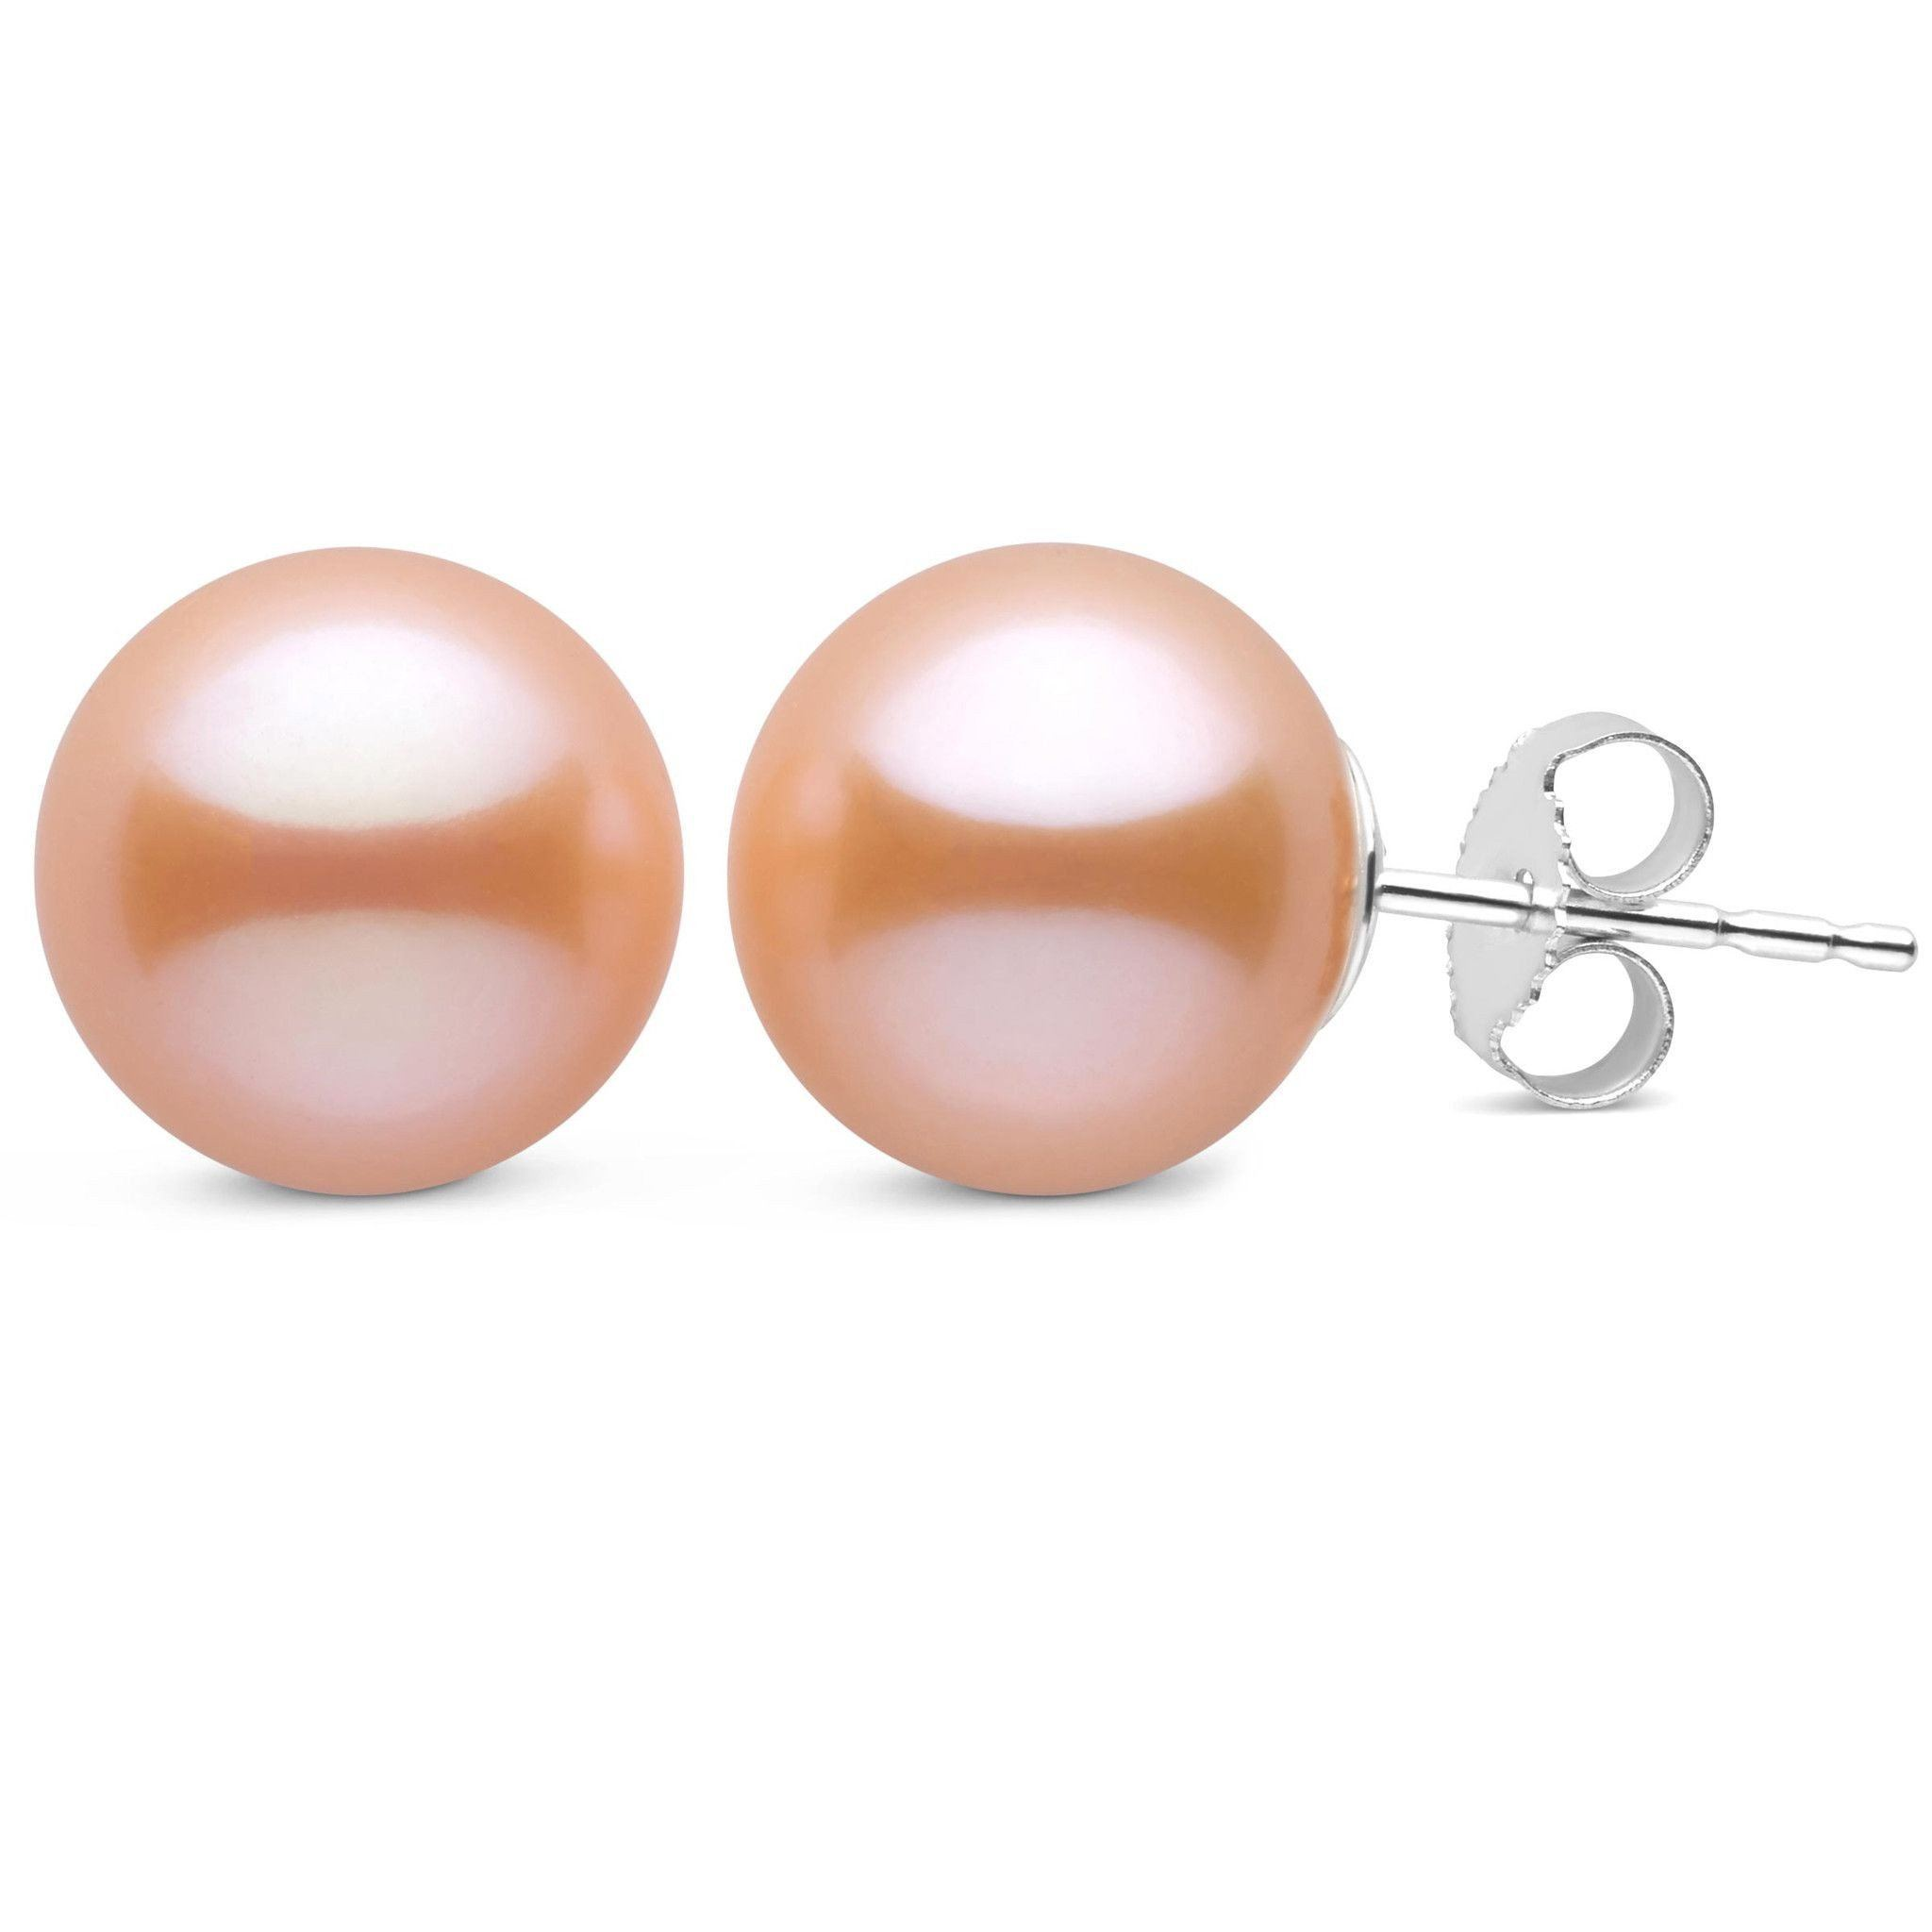 10.0-10.5 mm Pink to Peach Freshadama Freshwater Pearl Stud Earrings